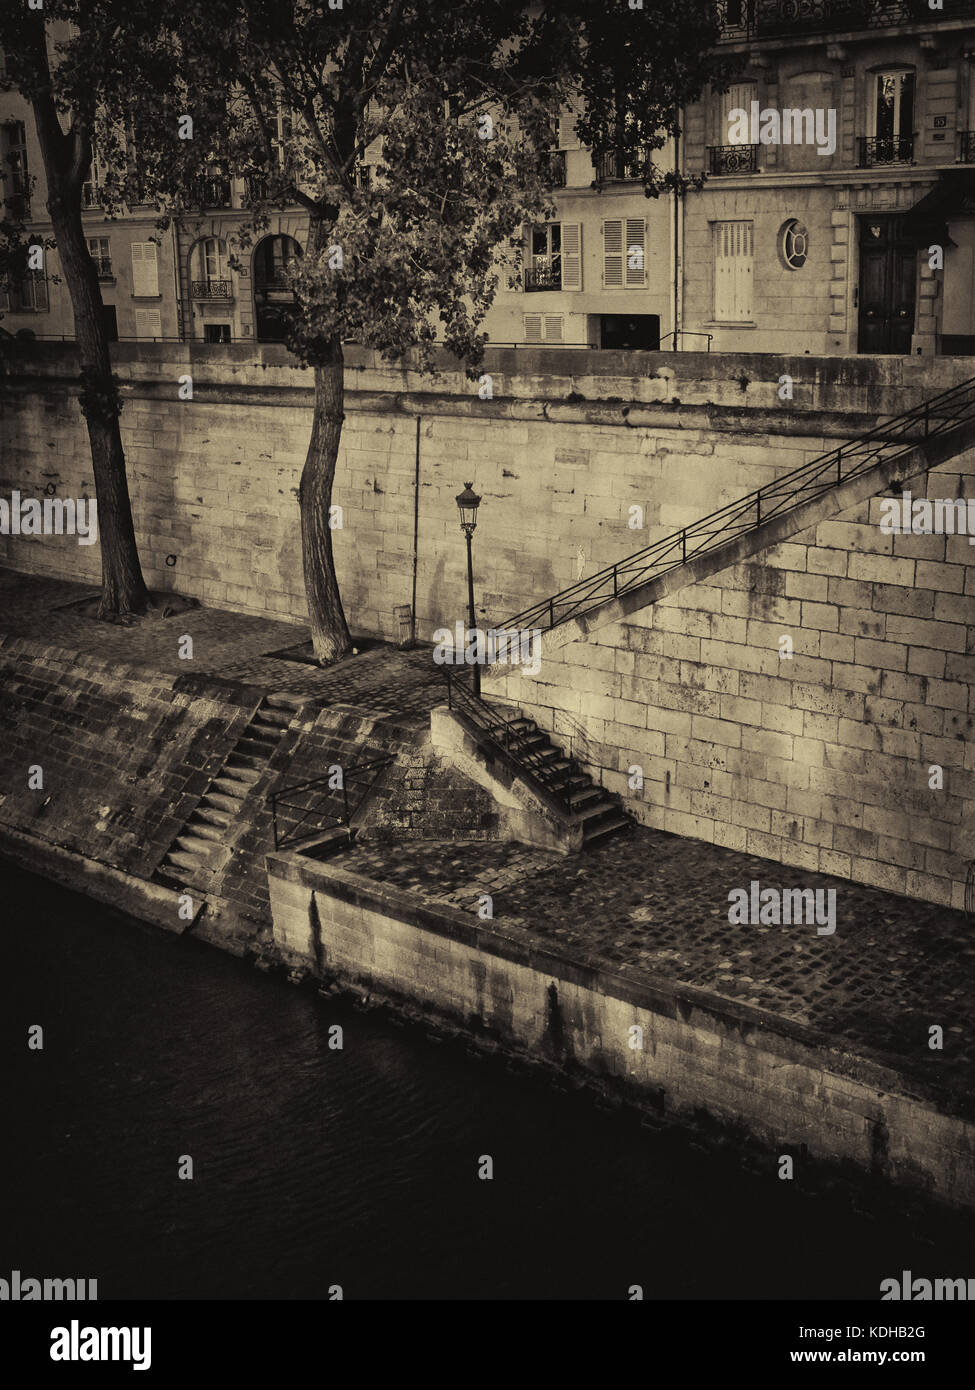 Quai d'Orléans on the Ile Saint-Louis Paris France. Also known as Swann's Way - Stock Image